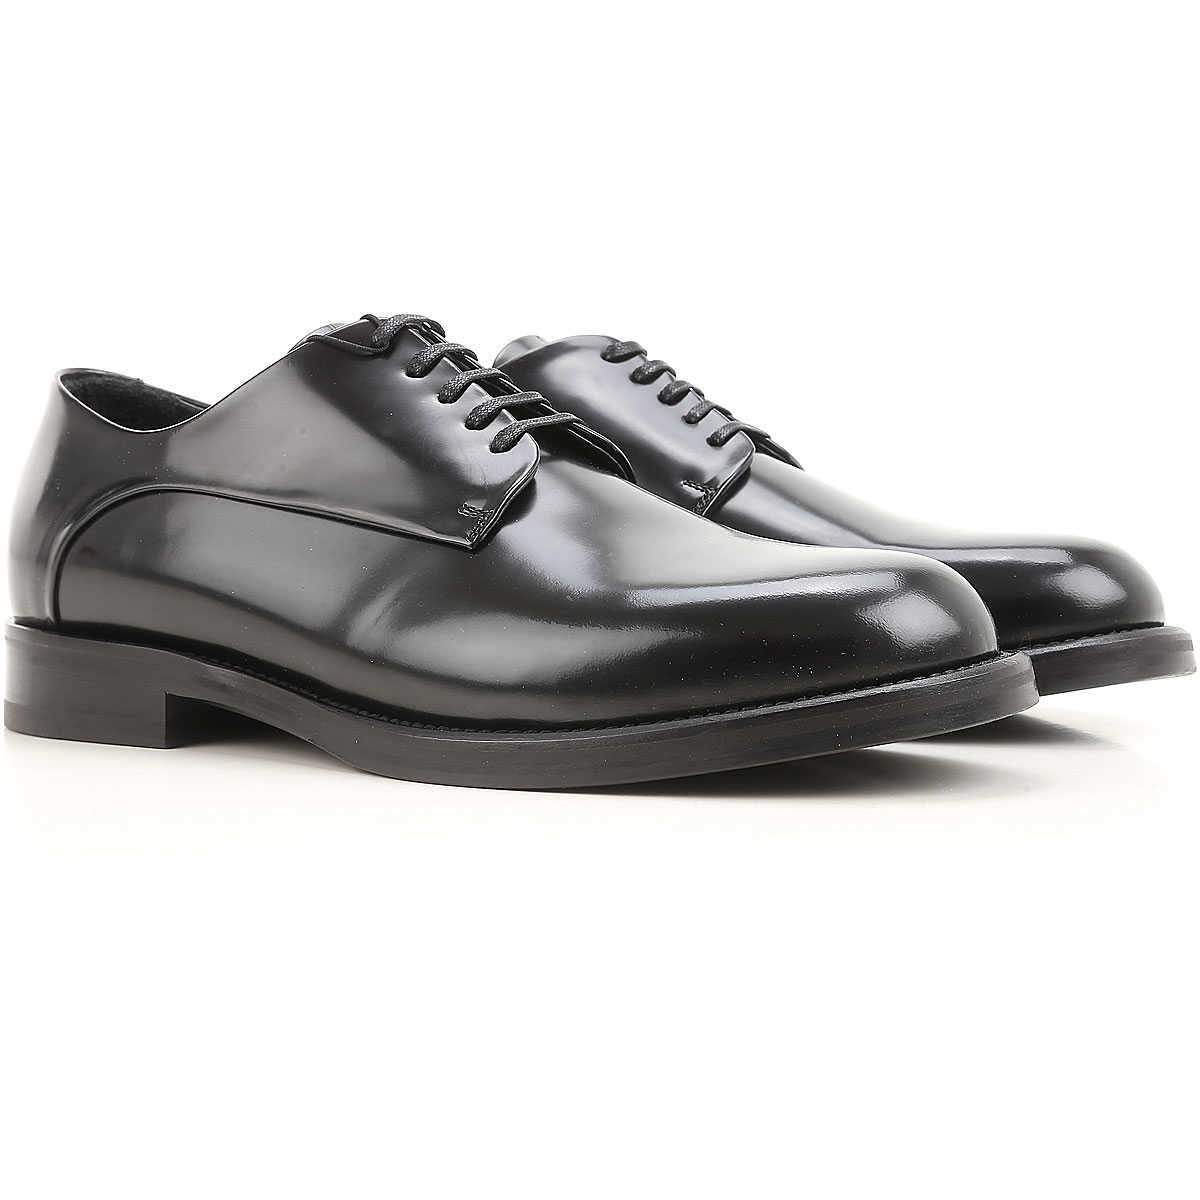 Emporio Armani Lace Up Shoes for Men Oxfords 8 9.5 Derbies and Brogues On Sale in Outlet UK - GOOFASH